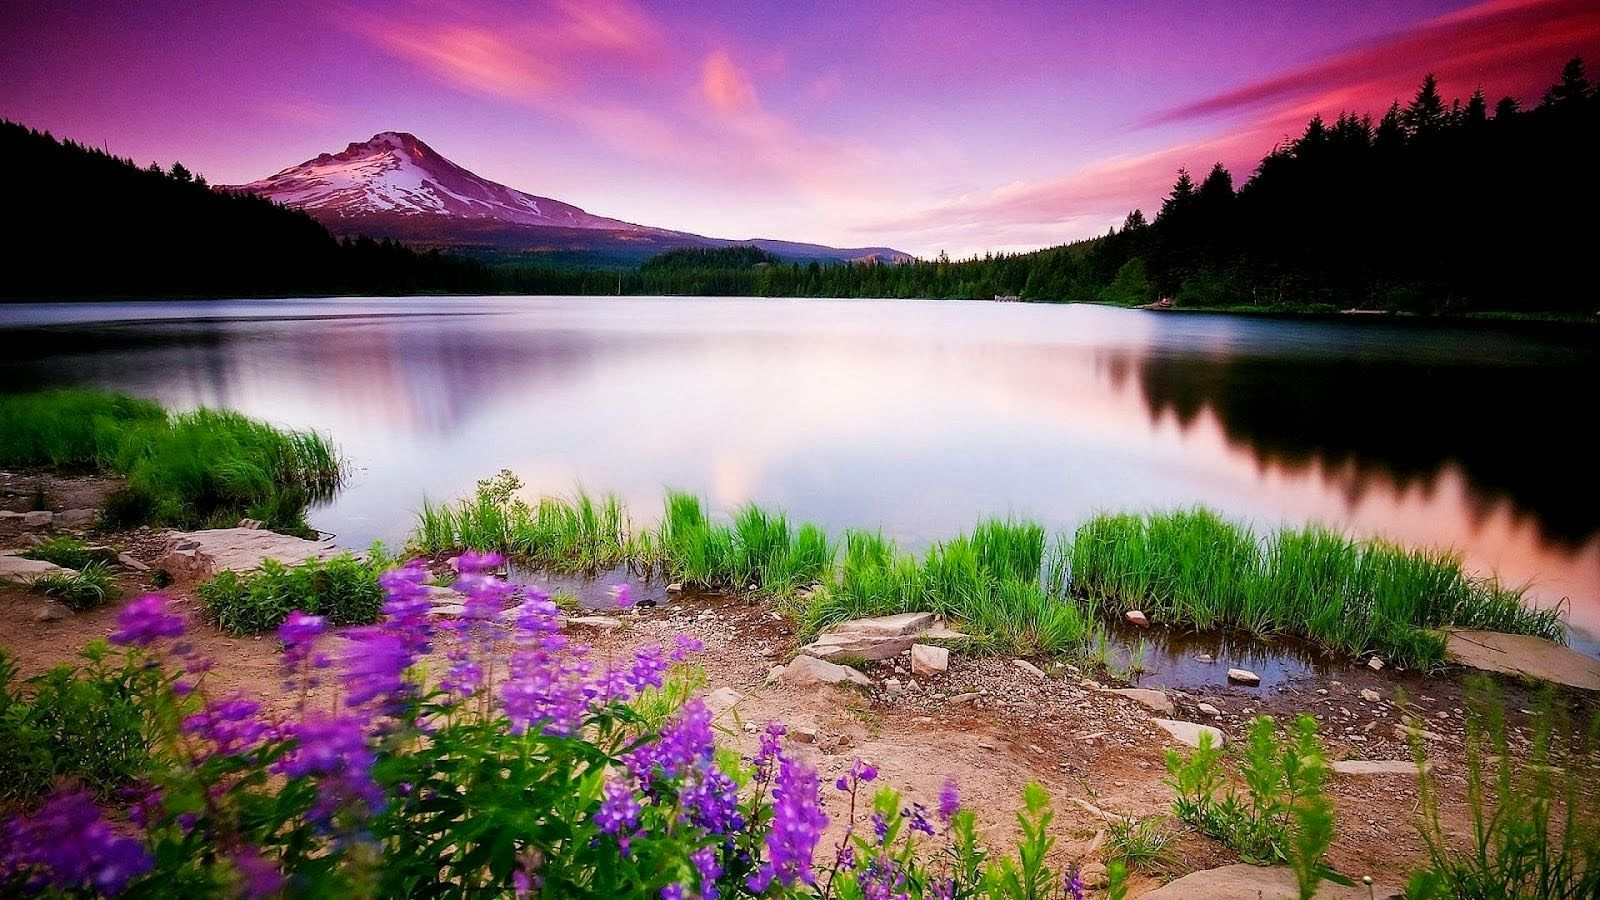 Colorful Lake Mountains Full HD Nature Wallpapers Free Downloads For Laptop PC Desktop ...